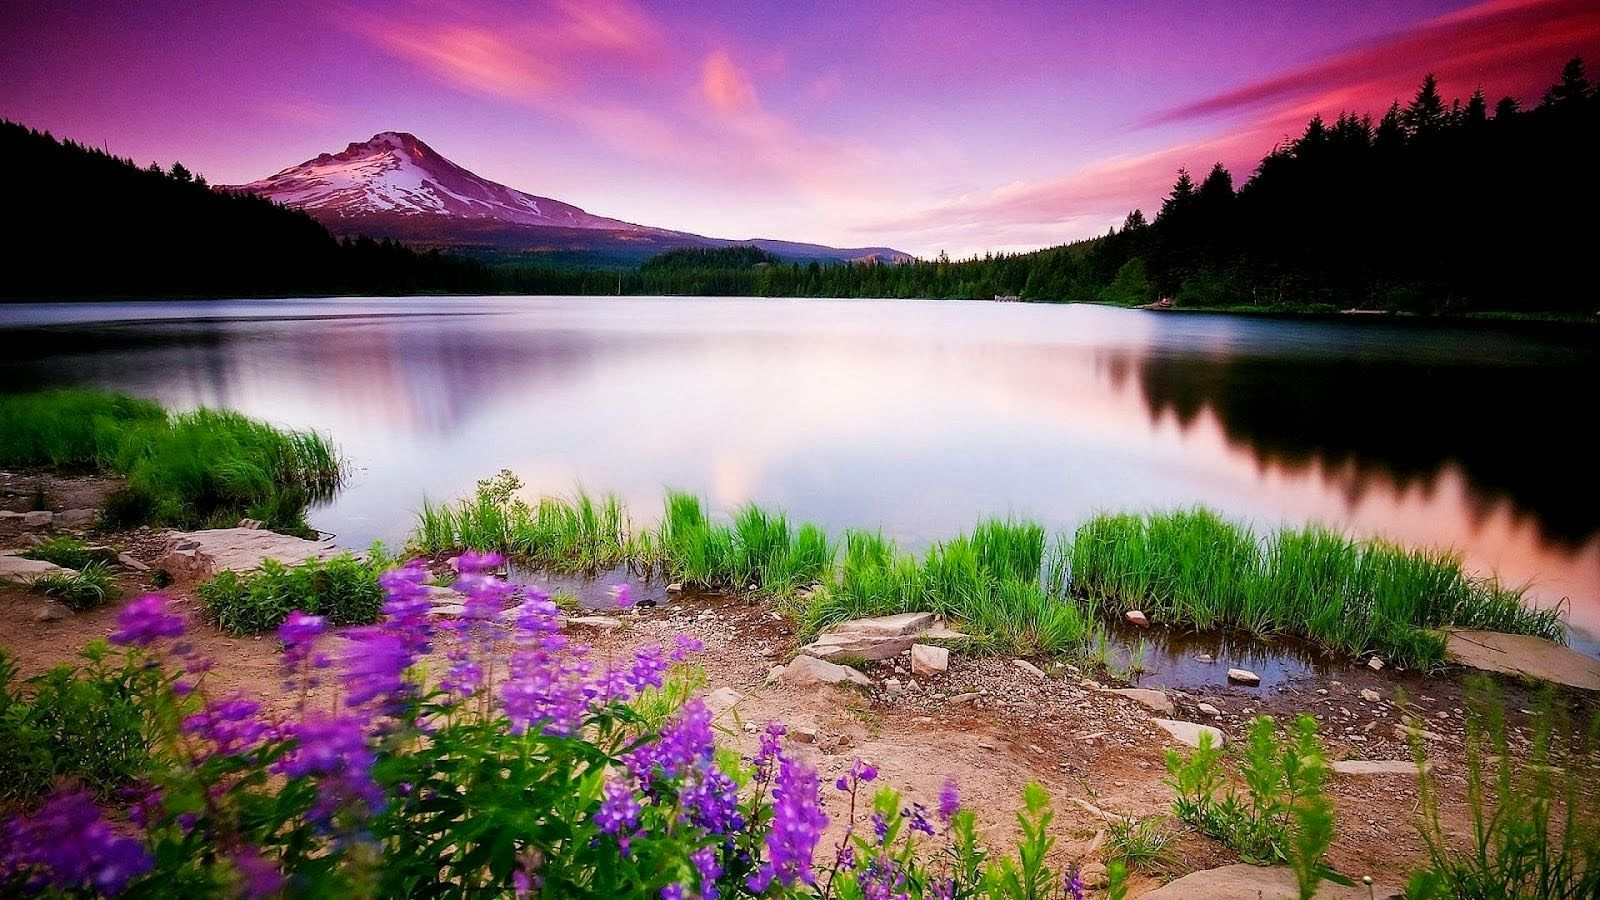 Colorful Lake Mountains Full HD Nature Wallpapers Free Downloads For Laptop PC Desktop ...